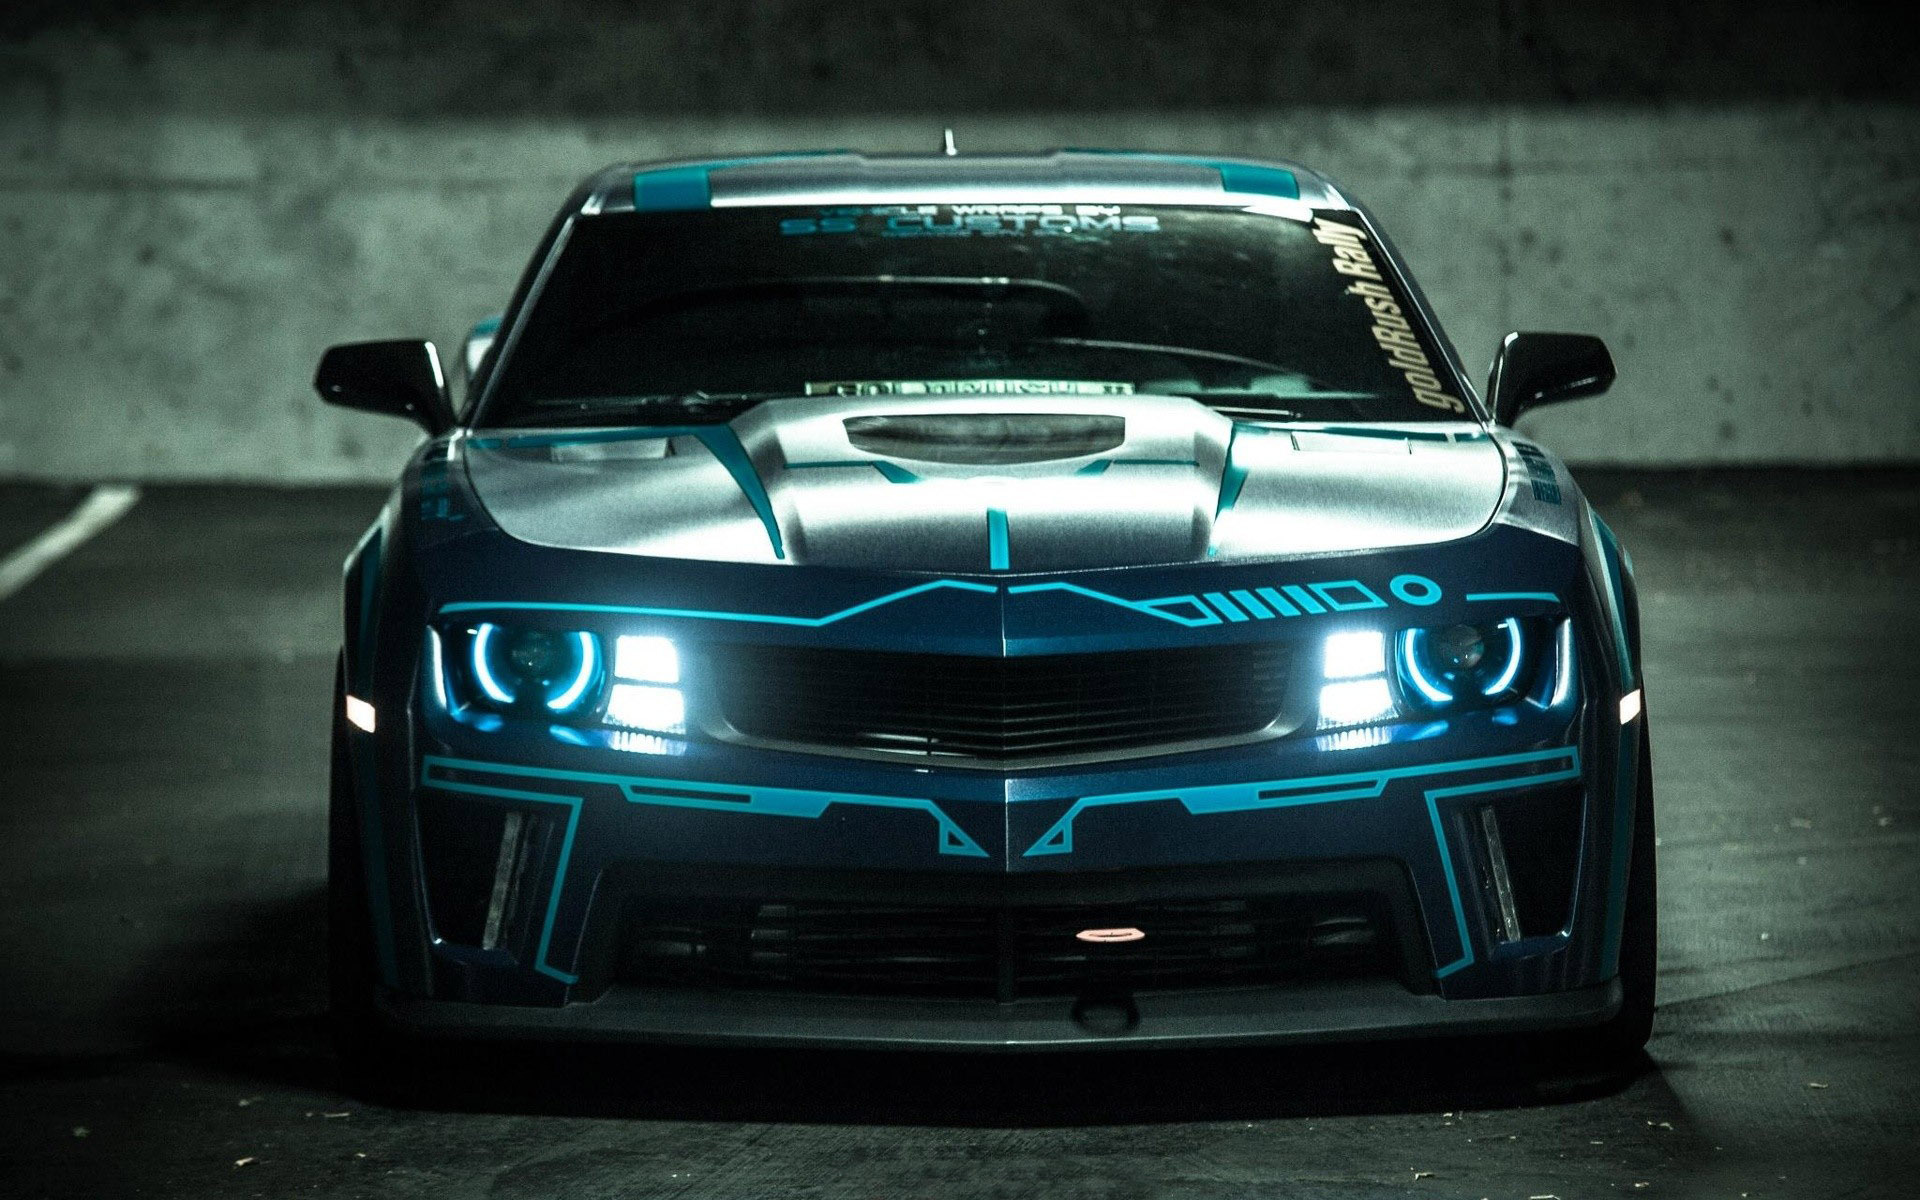 Chevrolet camaro wallpapers high quality download free voltagebd Gallery